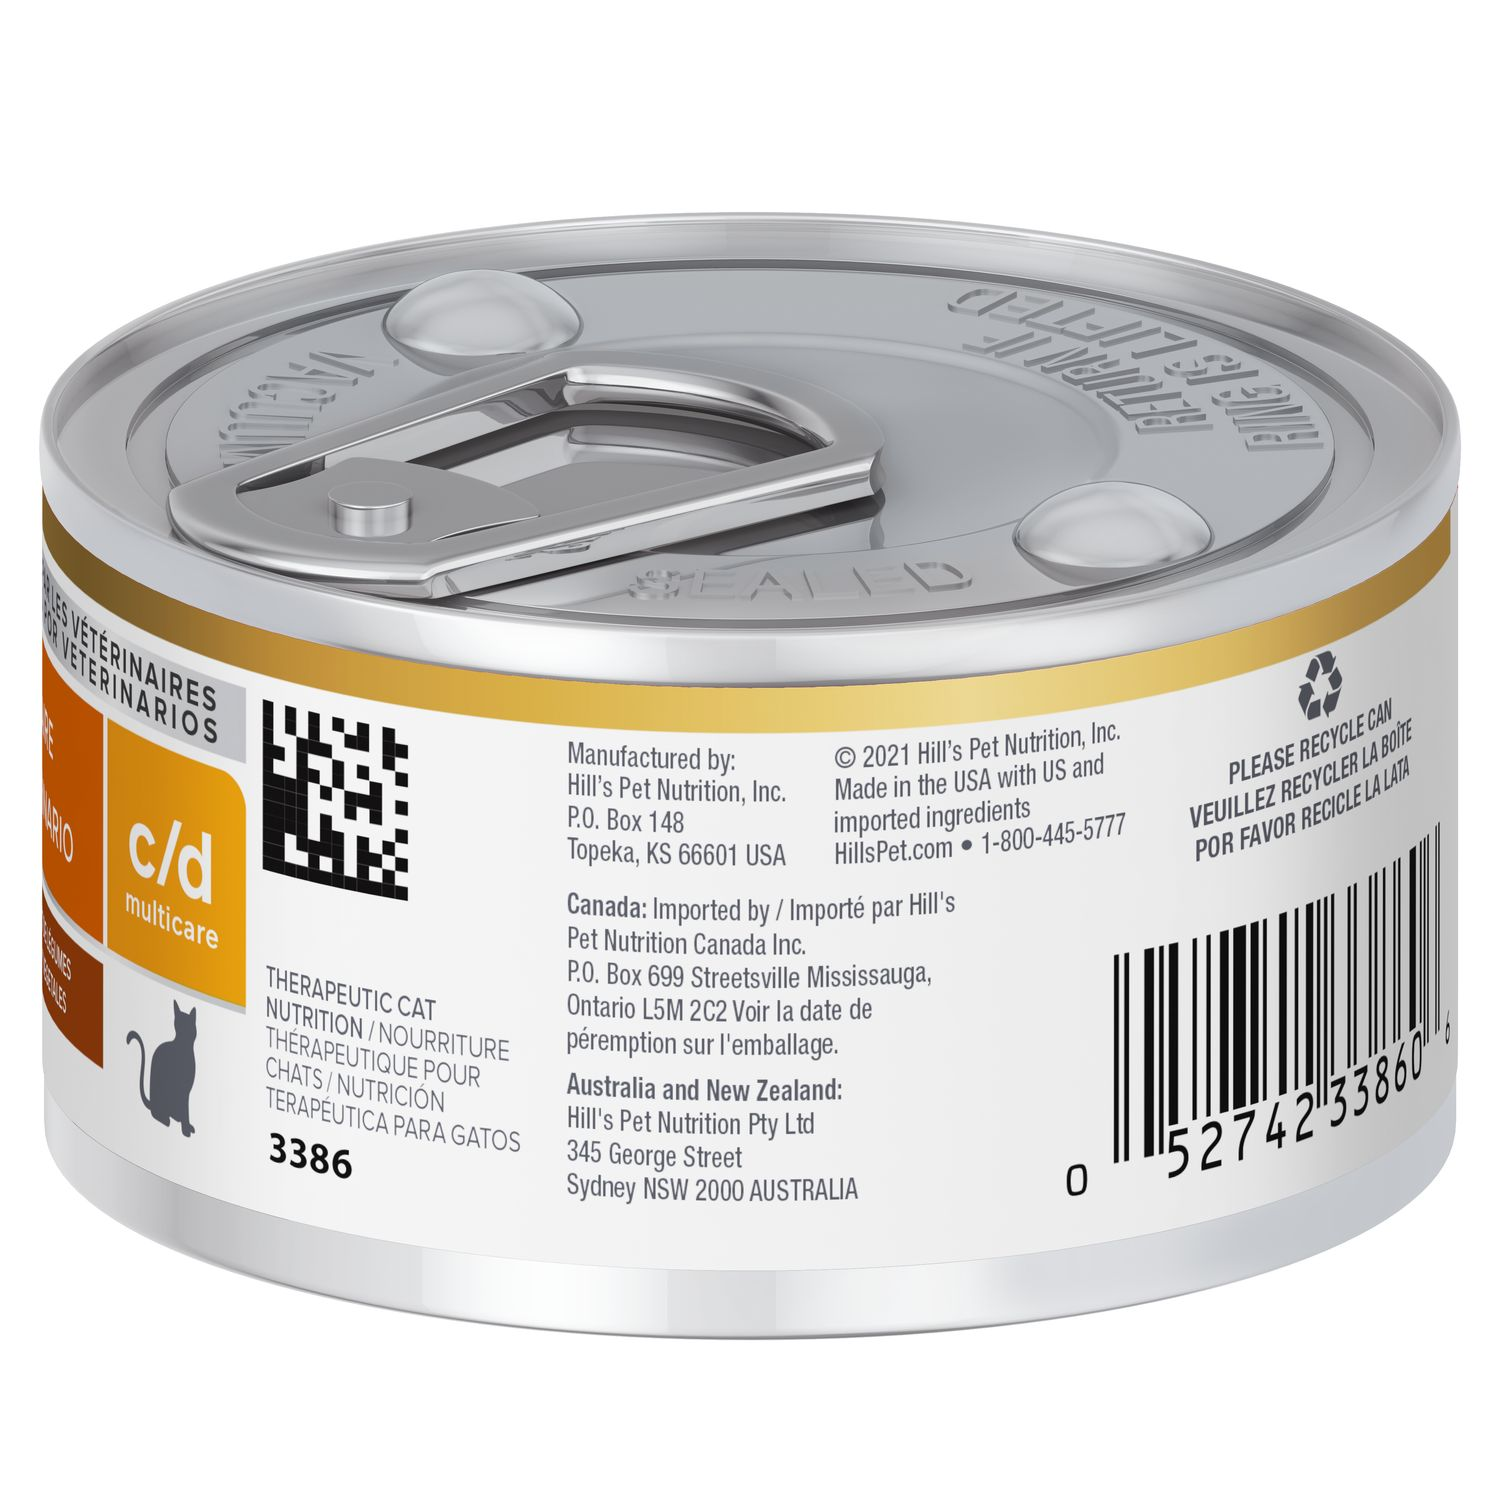 Hill's® Prescription Diet® C/d® Multicare Feline Chicken